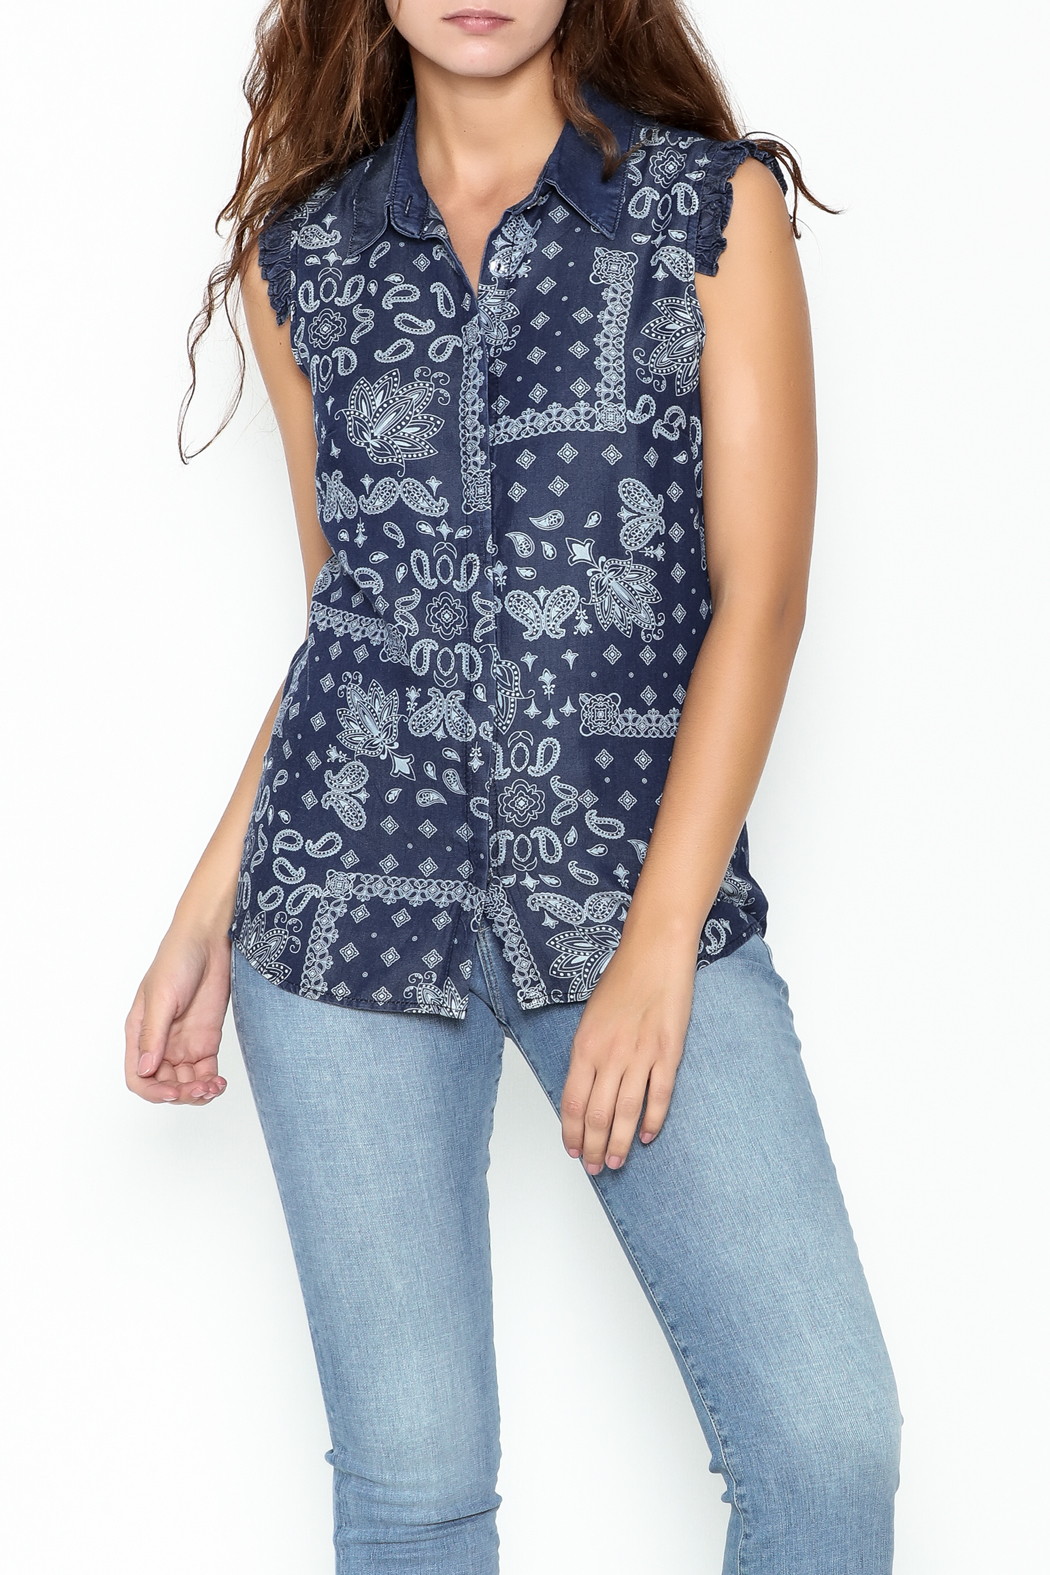 Marvy Fashion Printed Jean Top - Front Cropped Image